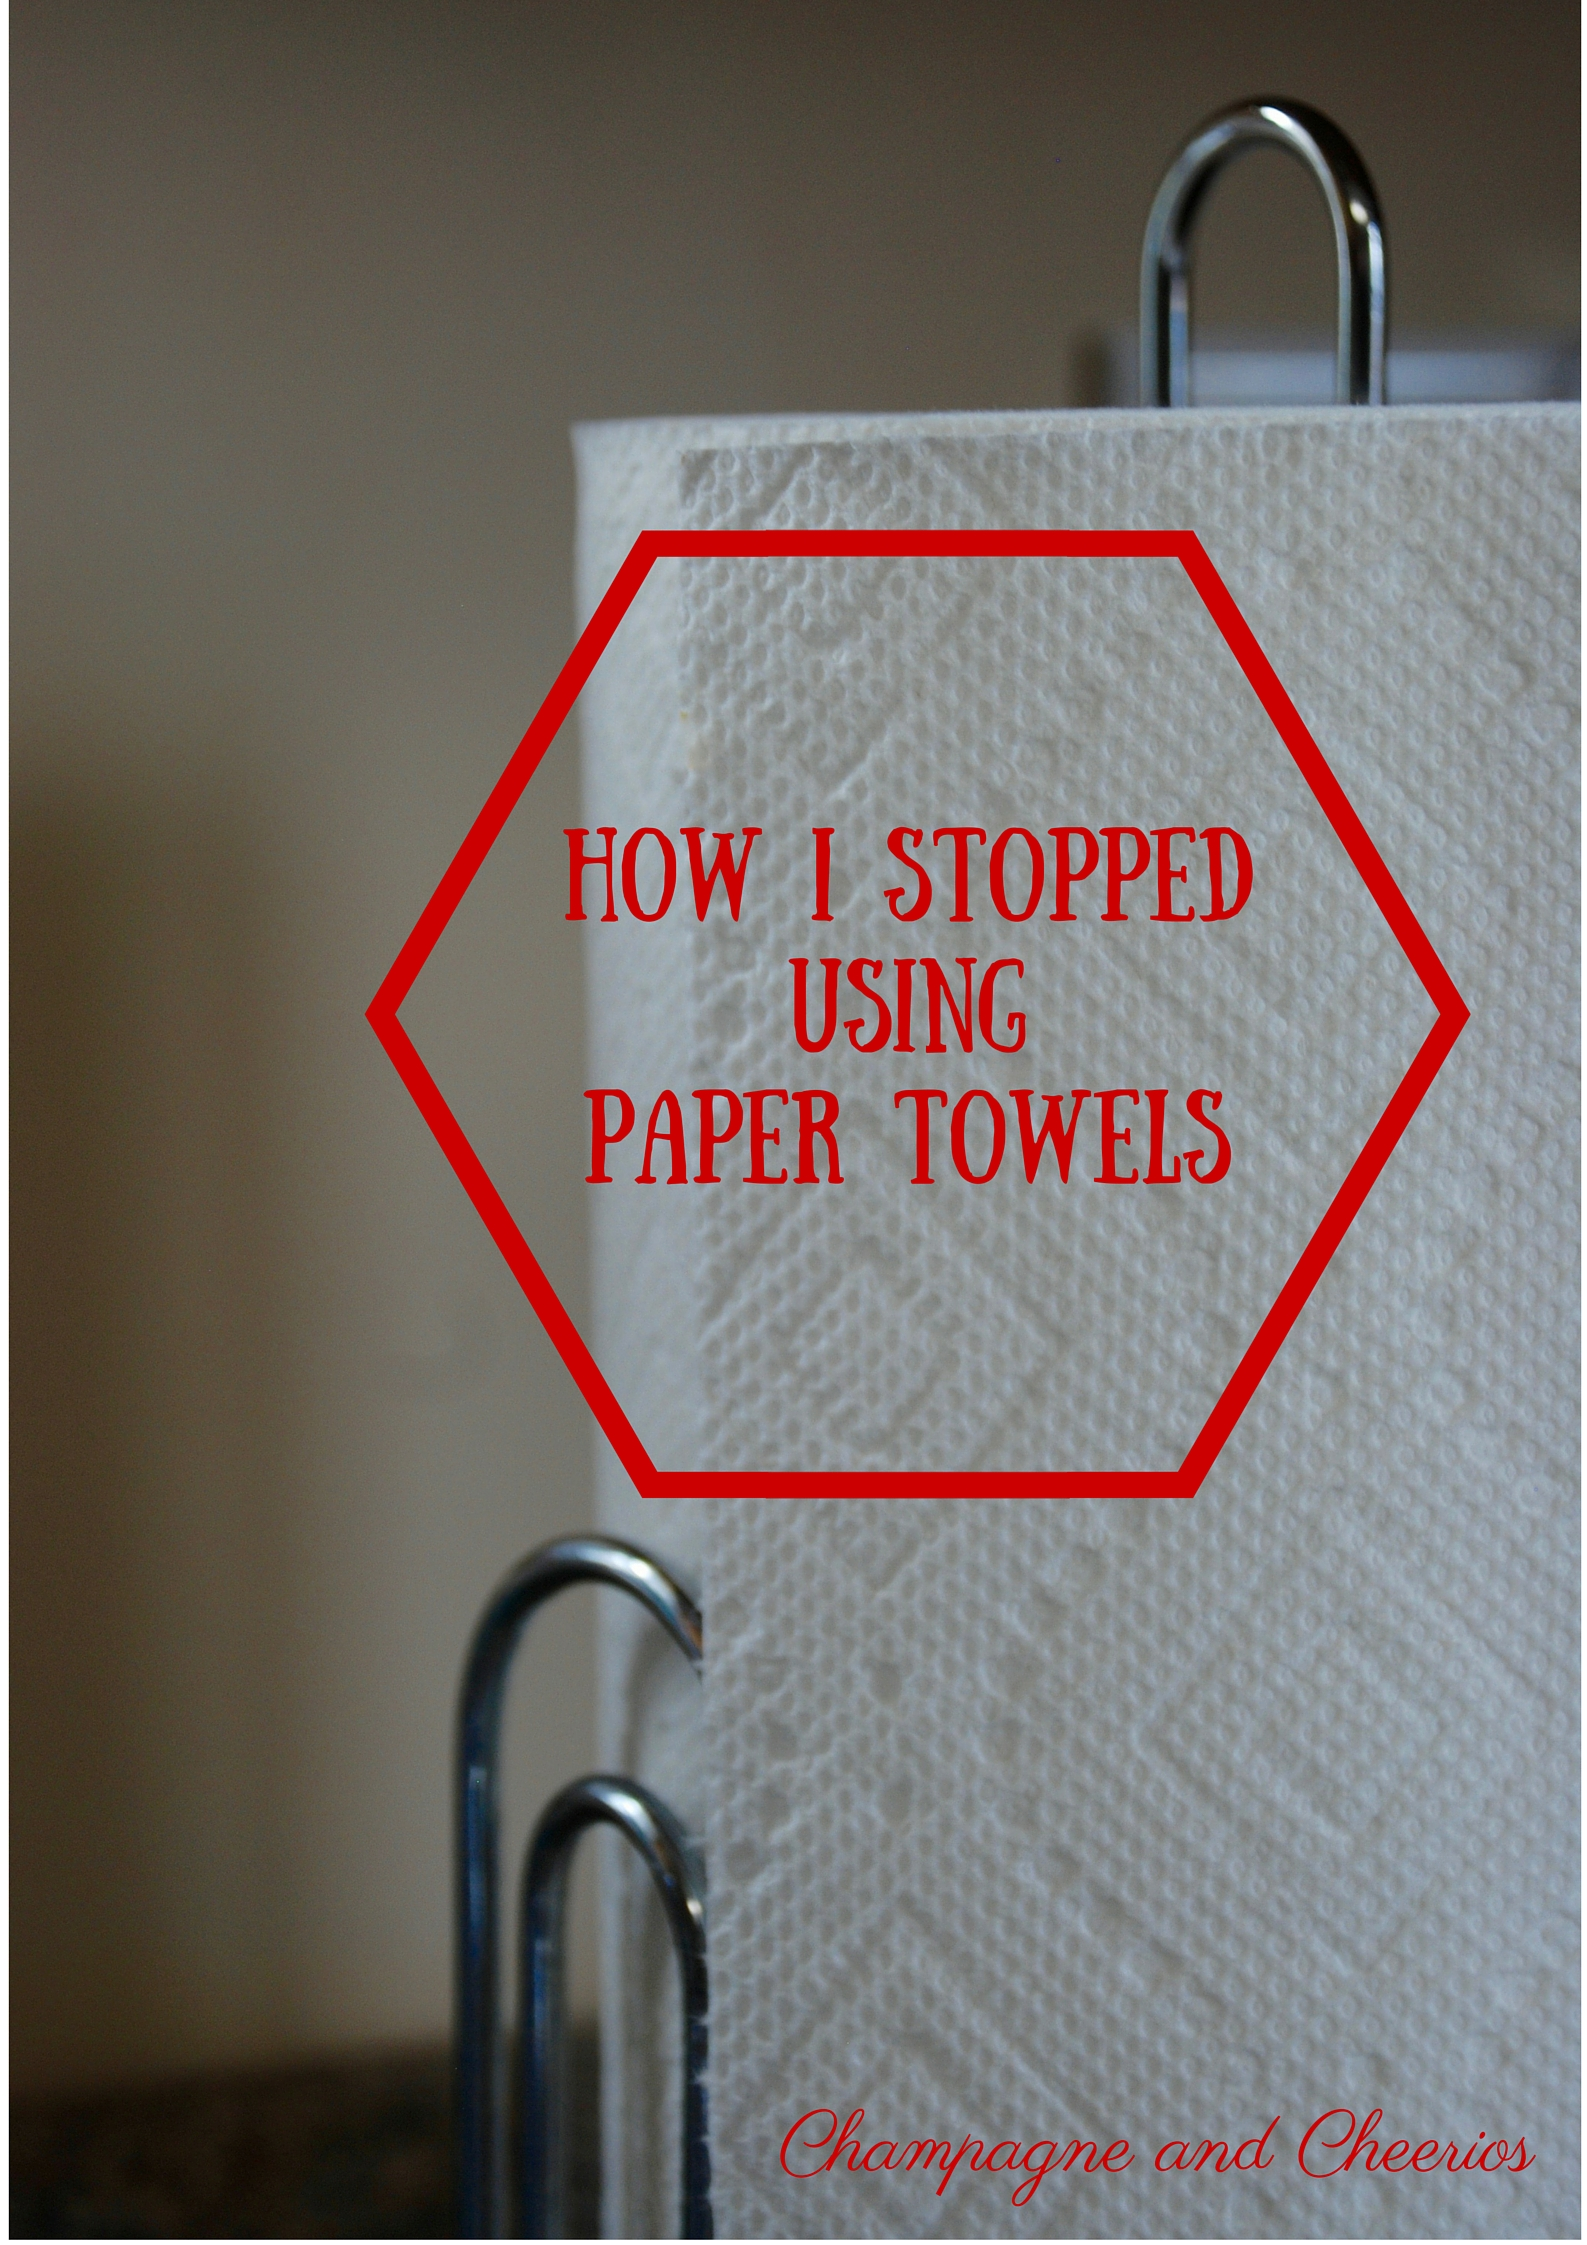 How I Stopped Using Paper Towels- Champagne and Cheerios